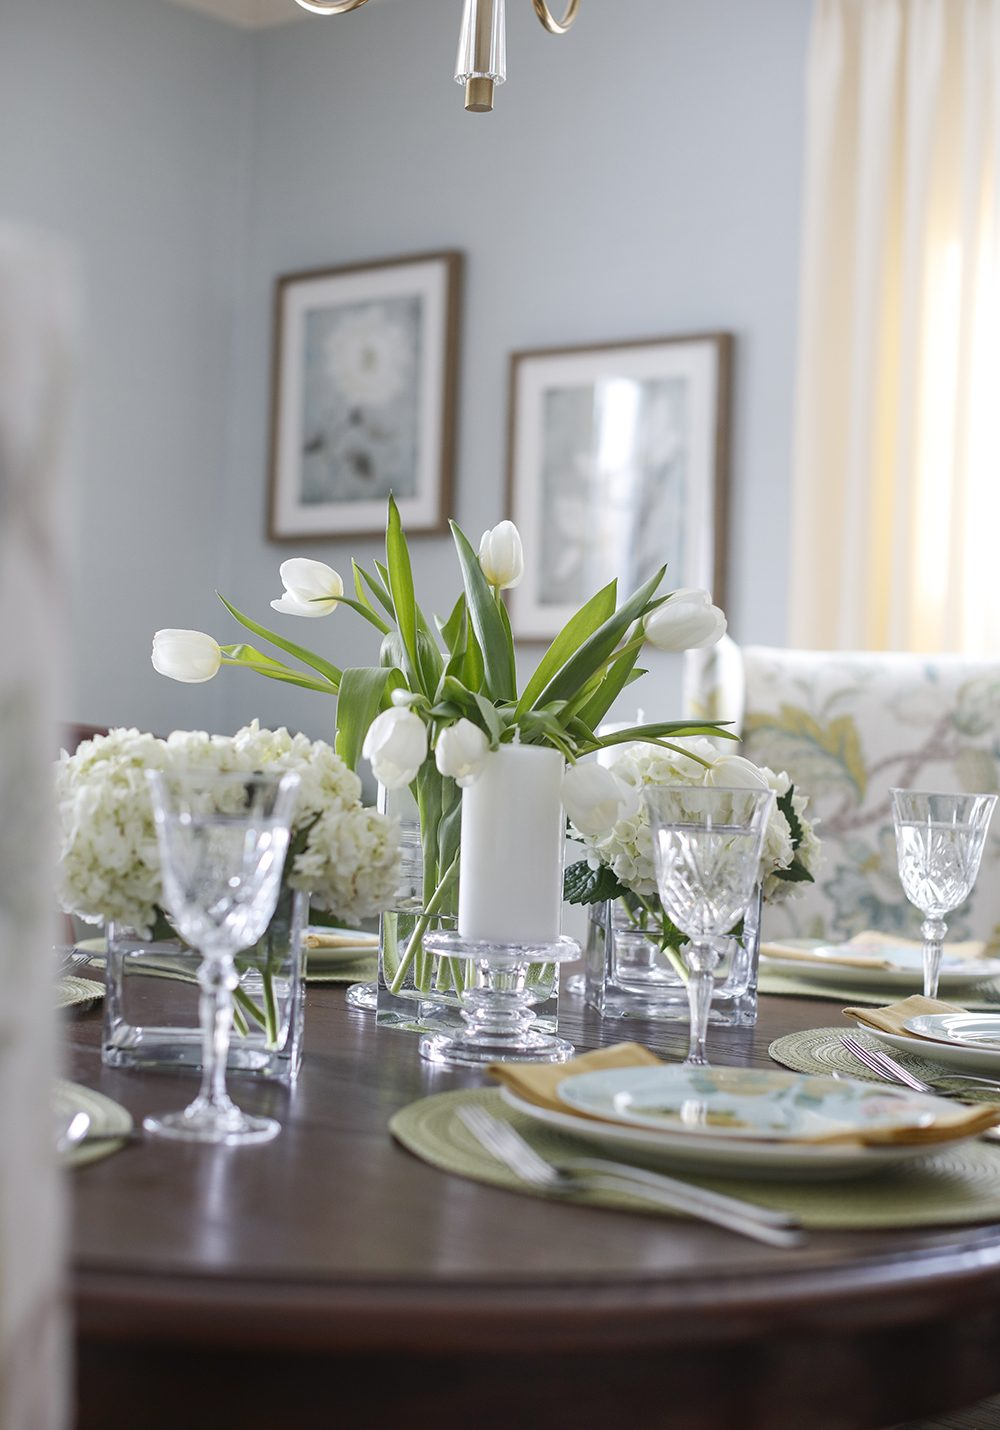 Table Setting-Tulips